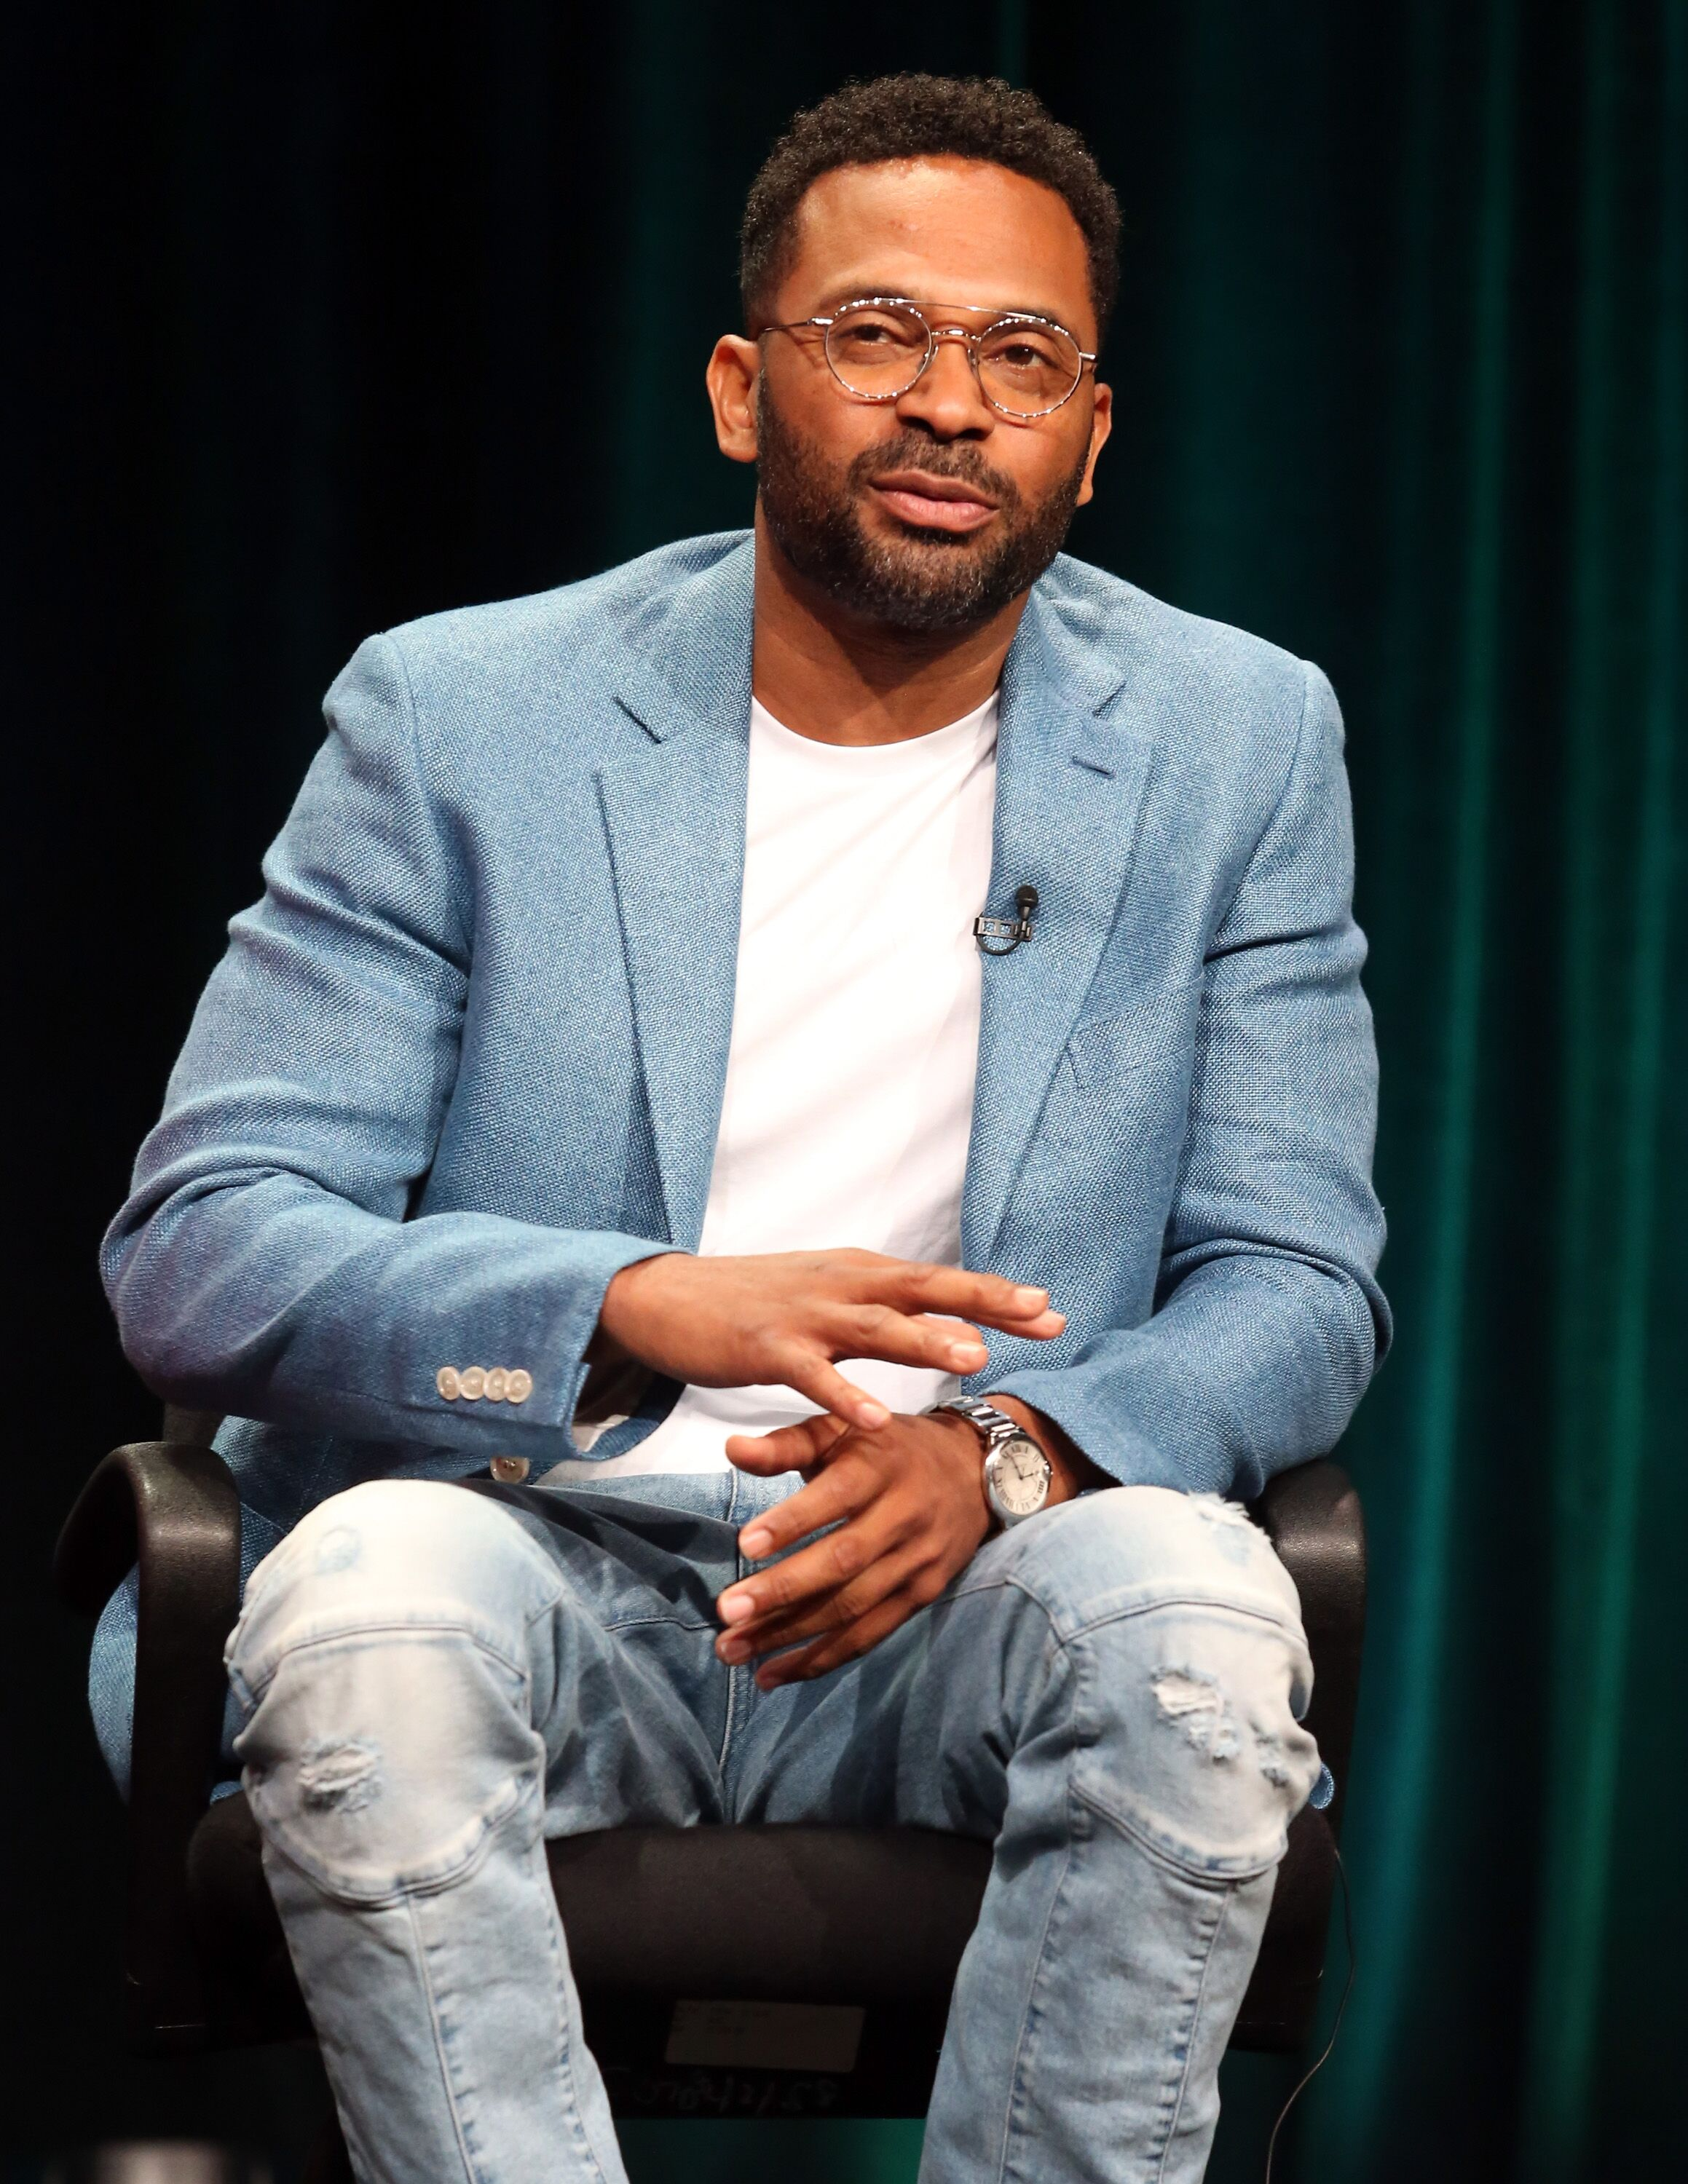 Mike Epps speaks onstage during the 'Survivor's Remorse' panel discussion at the STARZ portion of the 2015 Summer TCA Tour at The Beverly Hilton Hotel on July 31, 2015 in Beverly Hills, California. | Source: Getty Images